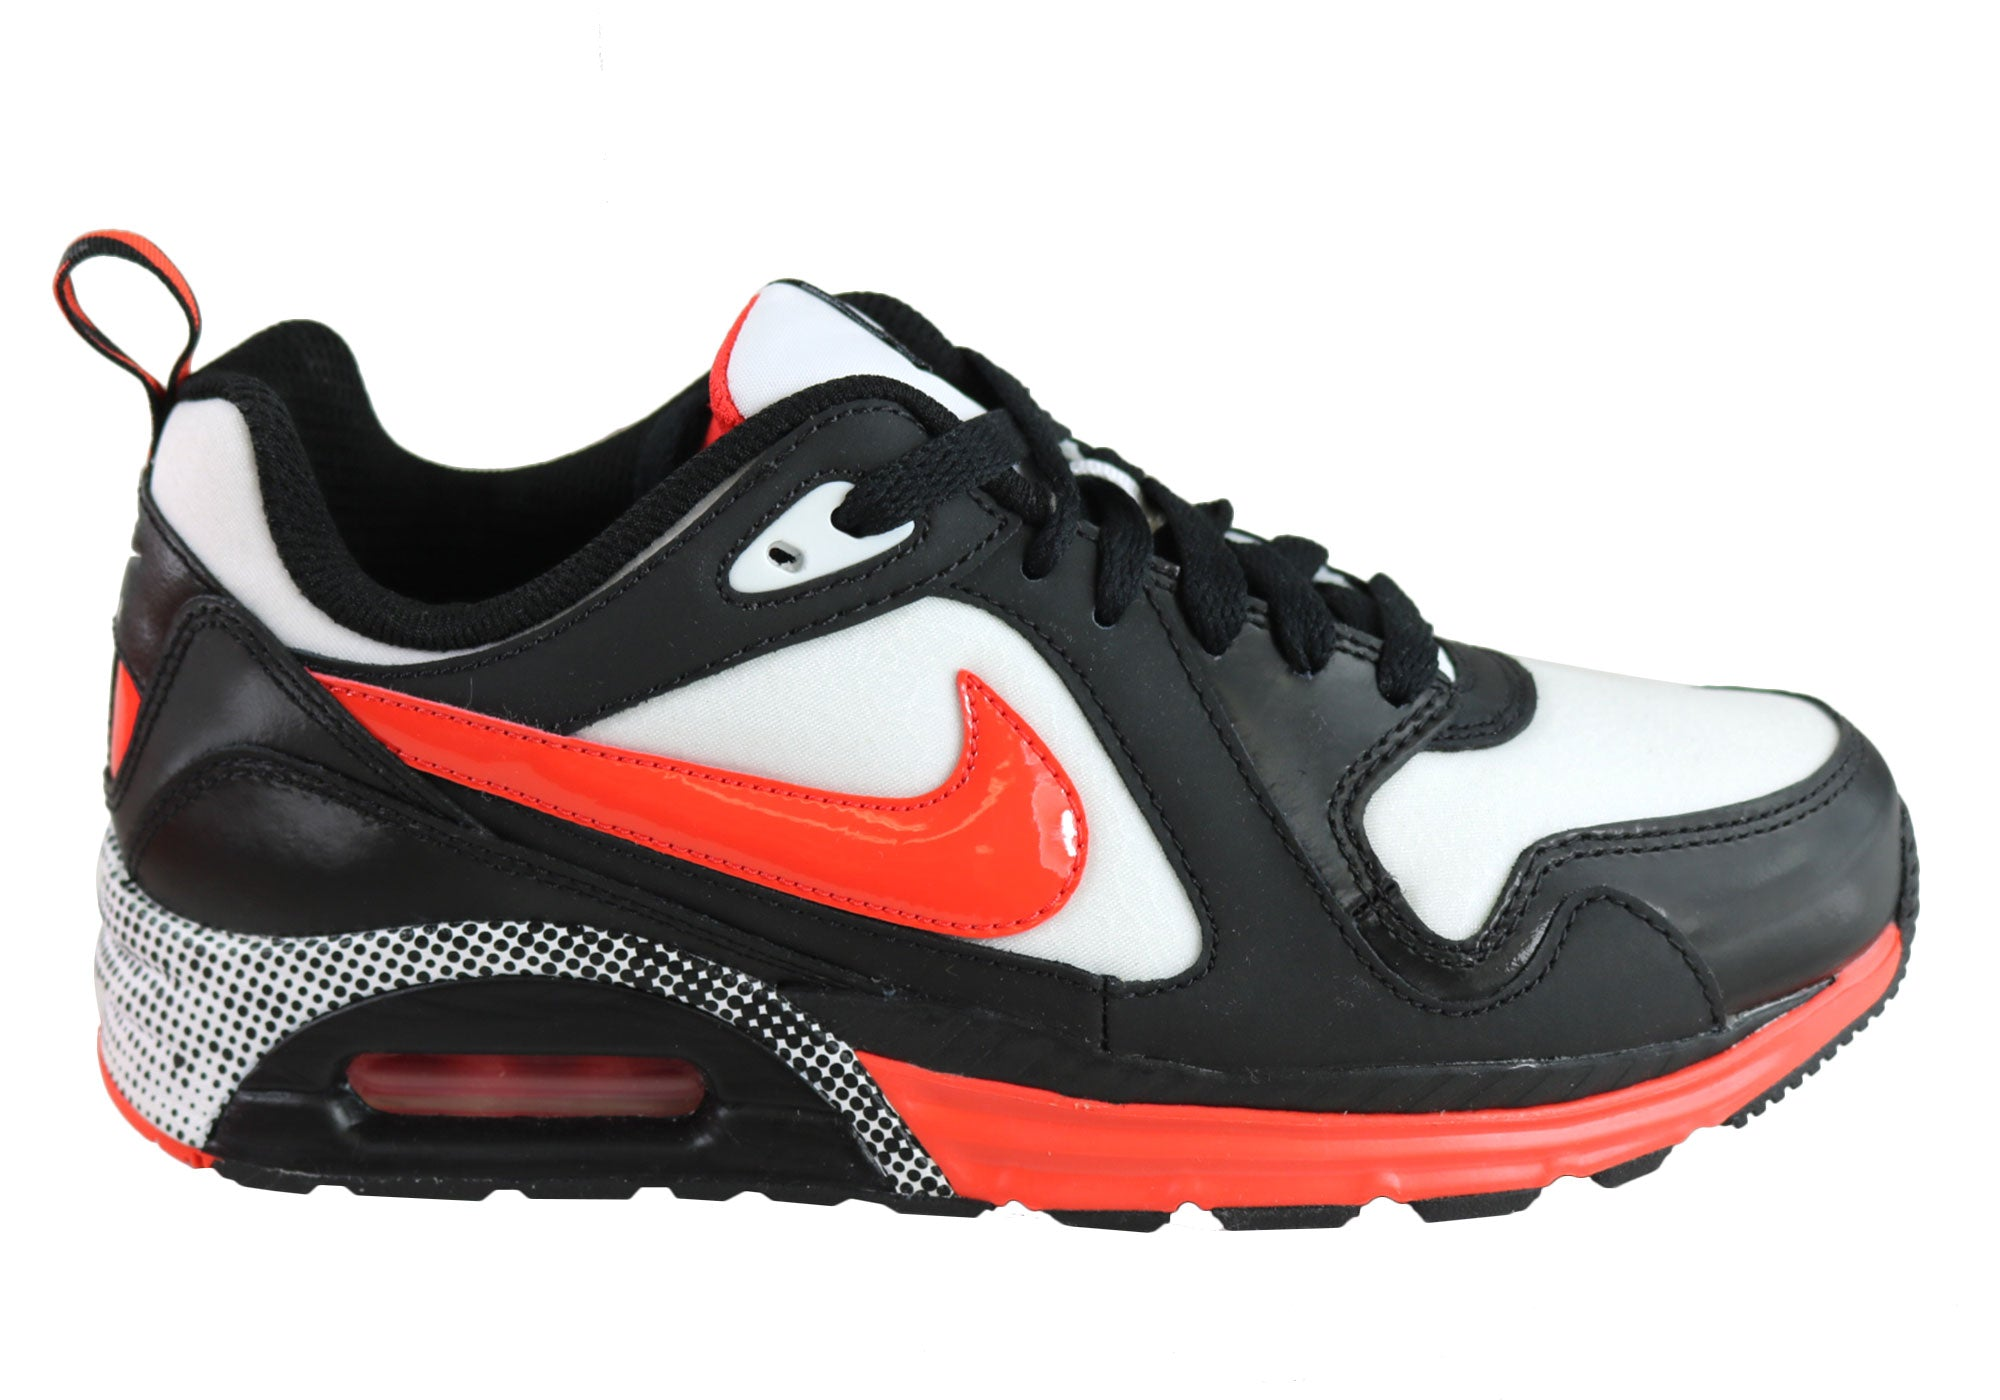 best service b5de4 83a02 Home Nike Air Max Trax Prm Womens Running Sport Shoes. White  ...